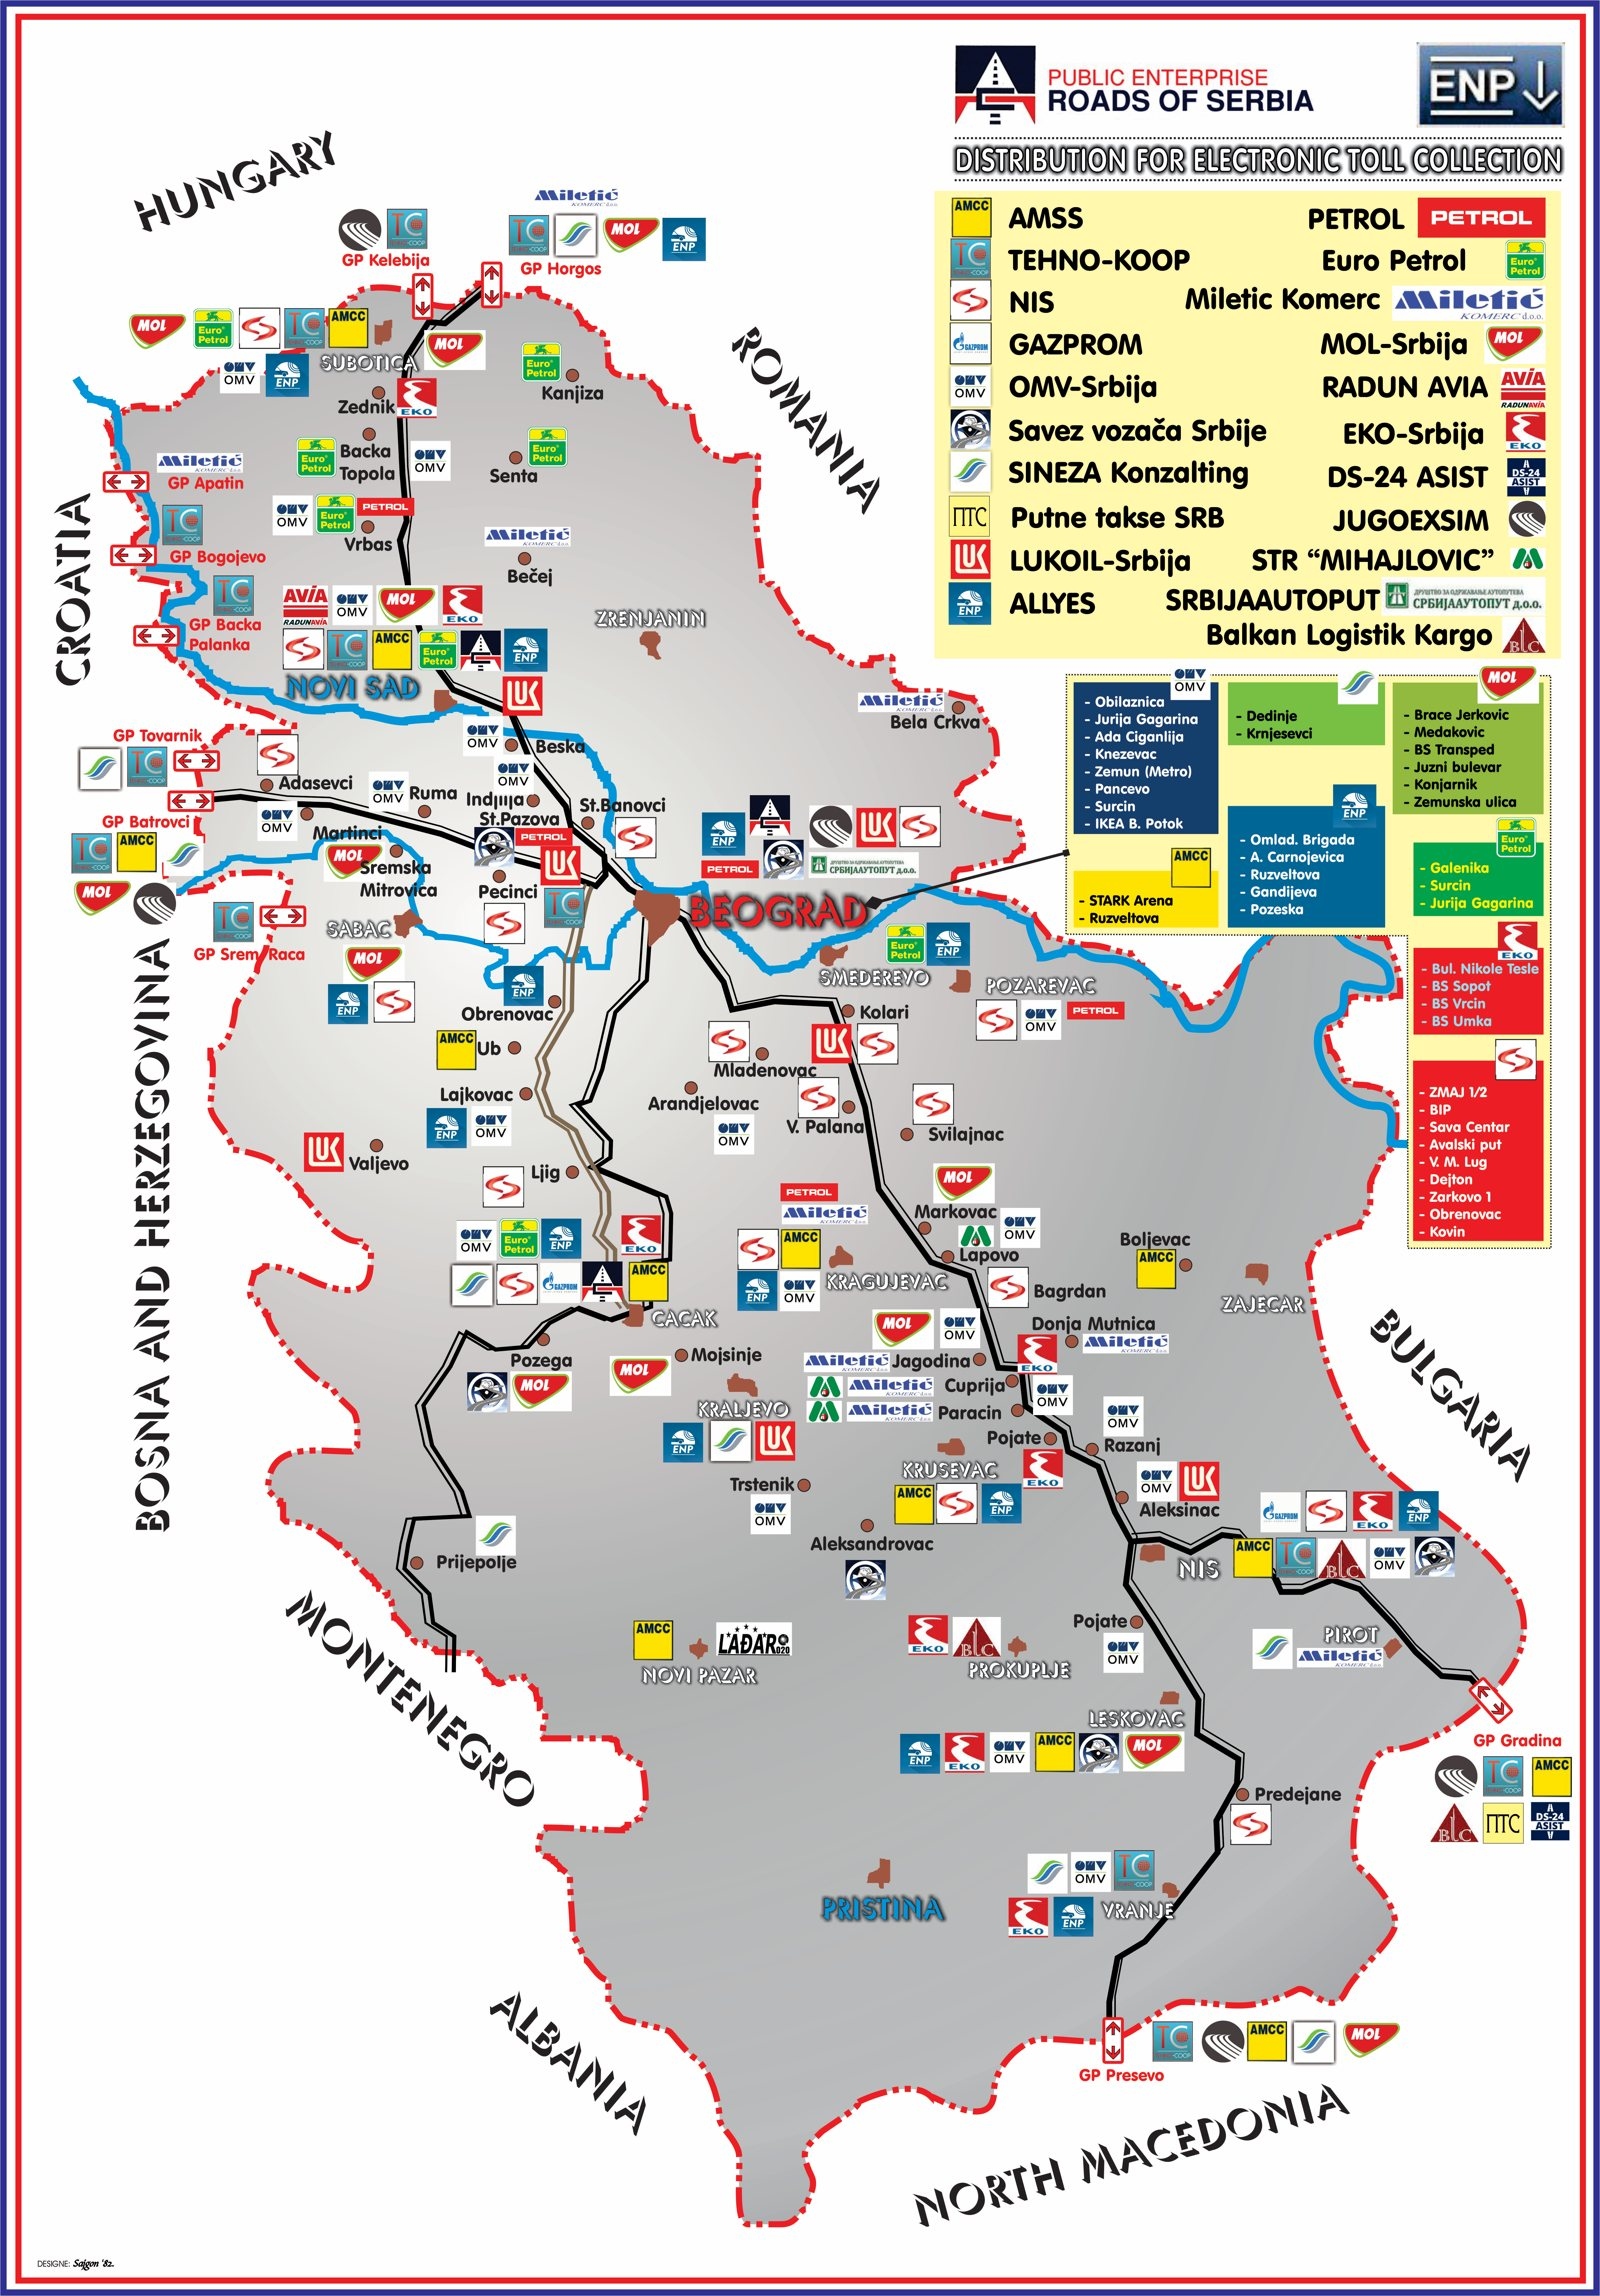 Authorized Distributors Pe Roads Of Serbia